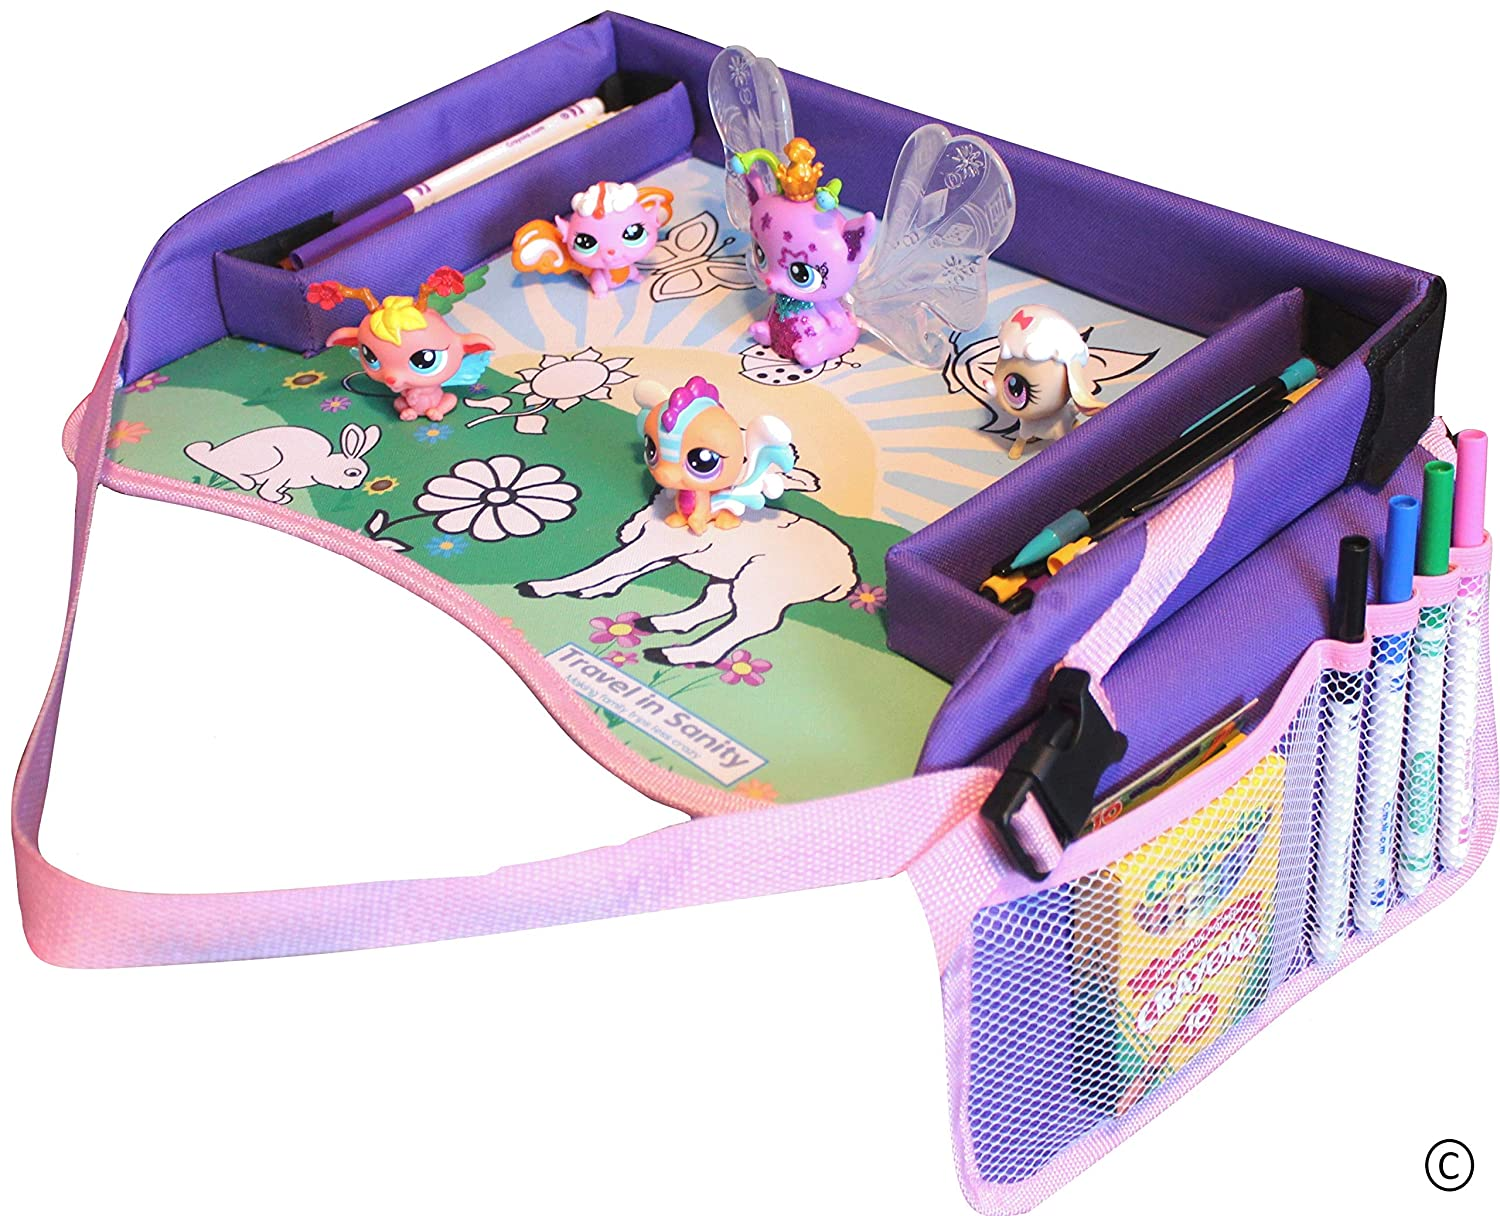 Kids Travel Tray for Car Seat | Perfect for Road Trip Games, Drawing Games or Travel Toys | Use as Car Seat Tray or Kids Lap Desk | Padded Sturdy Surface & Side Walls by Travel in Sanity TIS#323